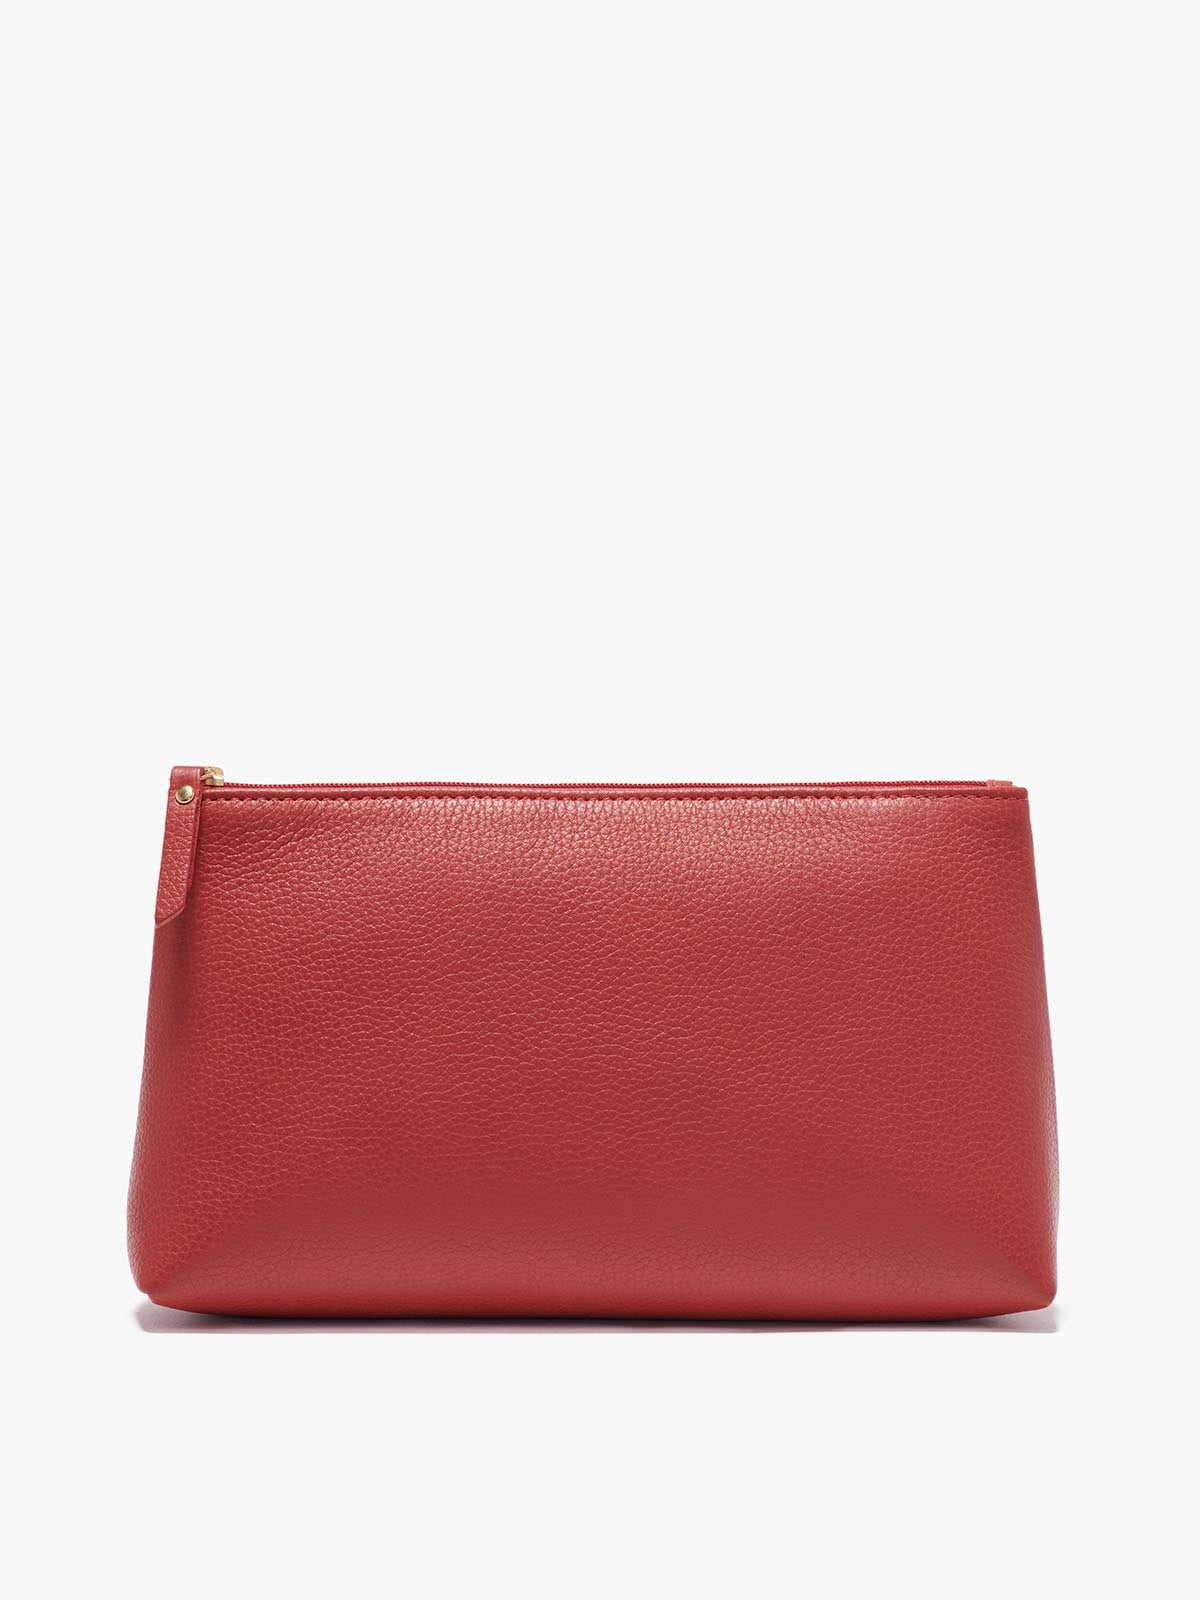 Large Leather Pouch in Color Red with Gold Finishes